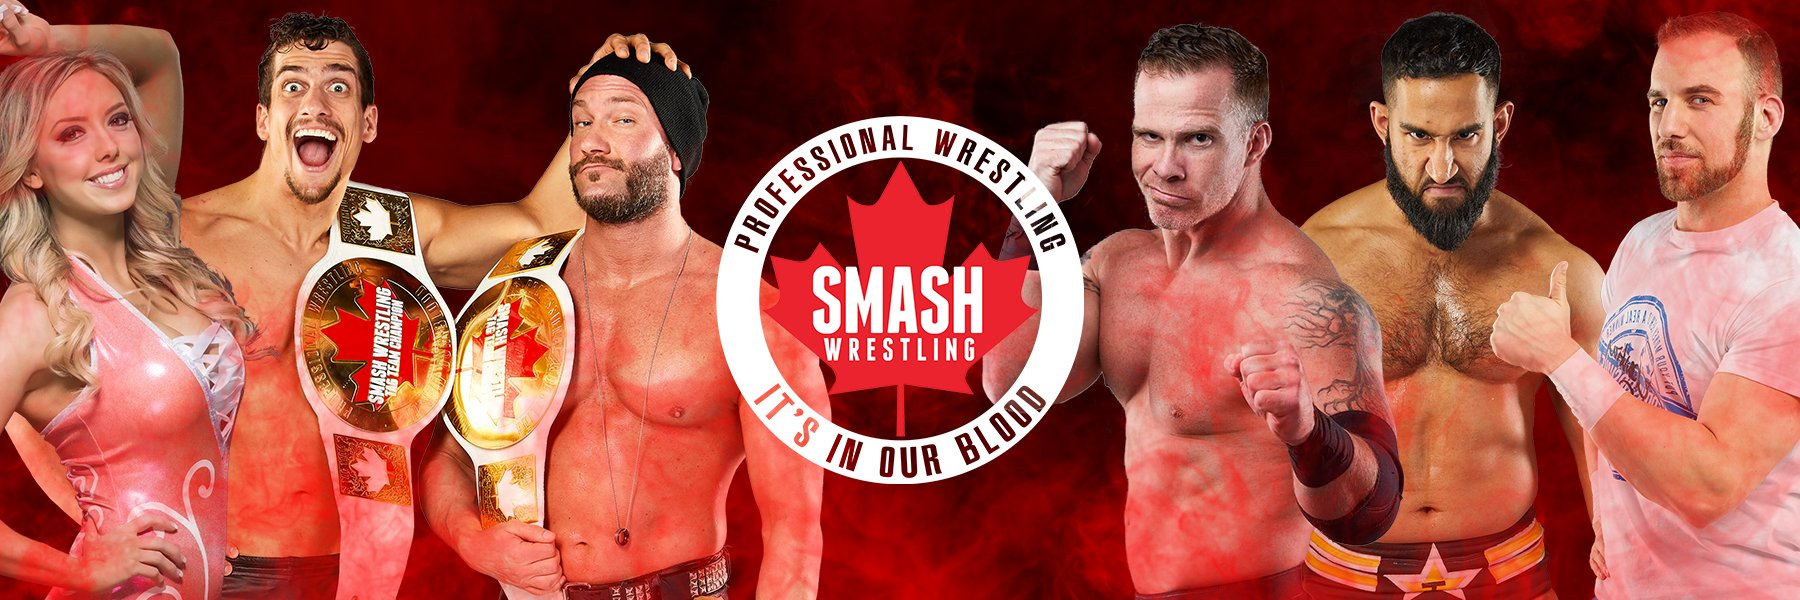 Check out the BEST from Canada's Smash Wrestling